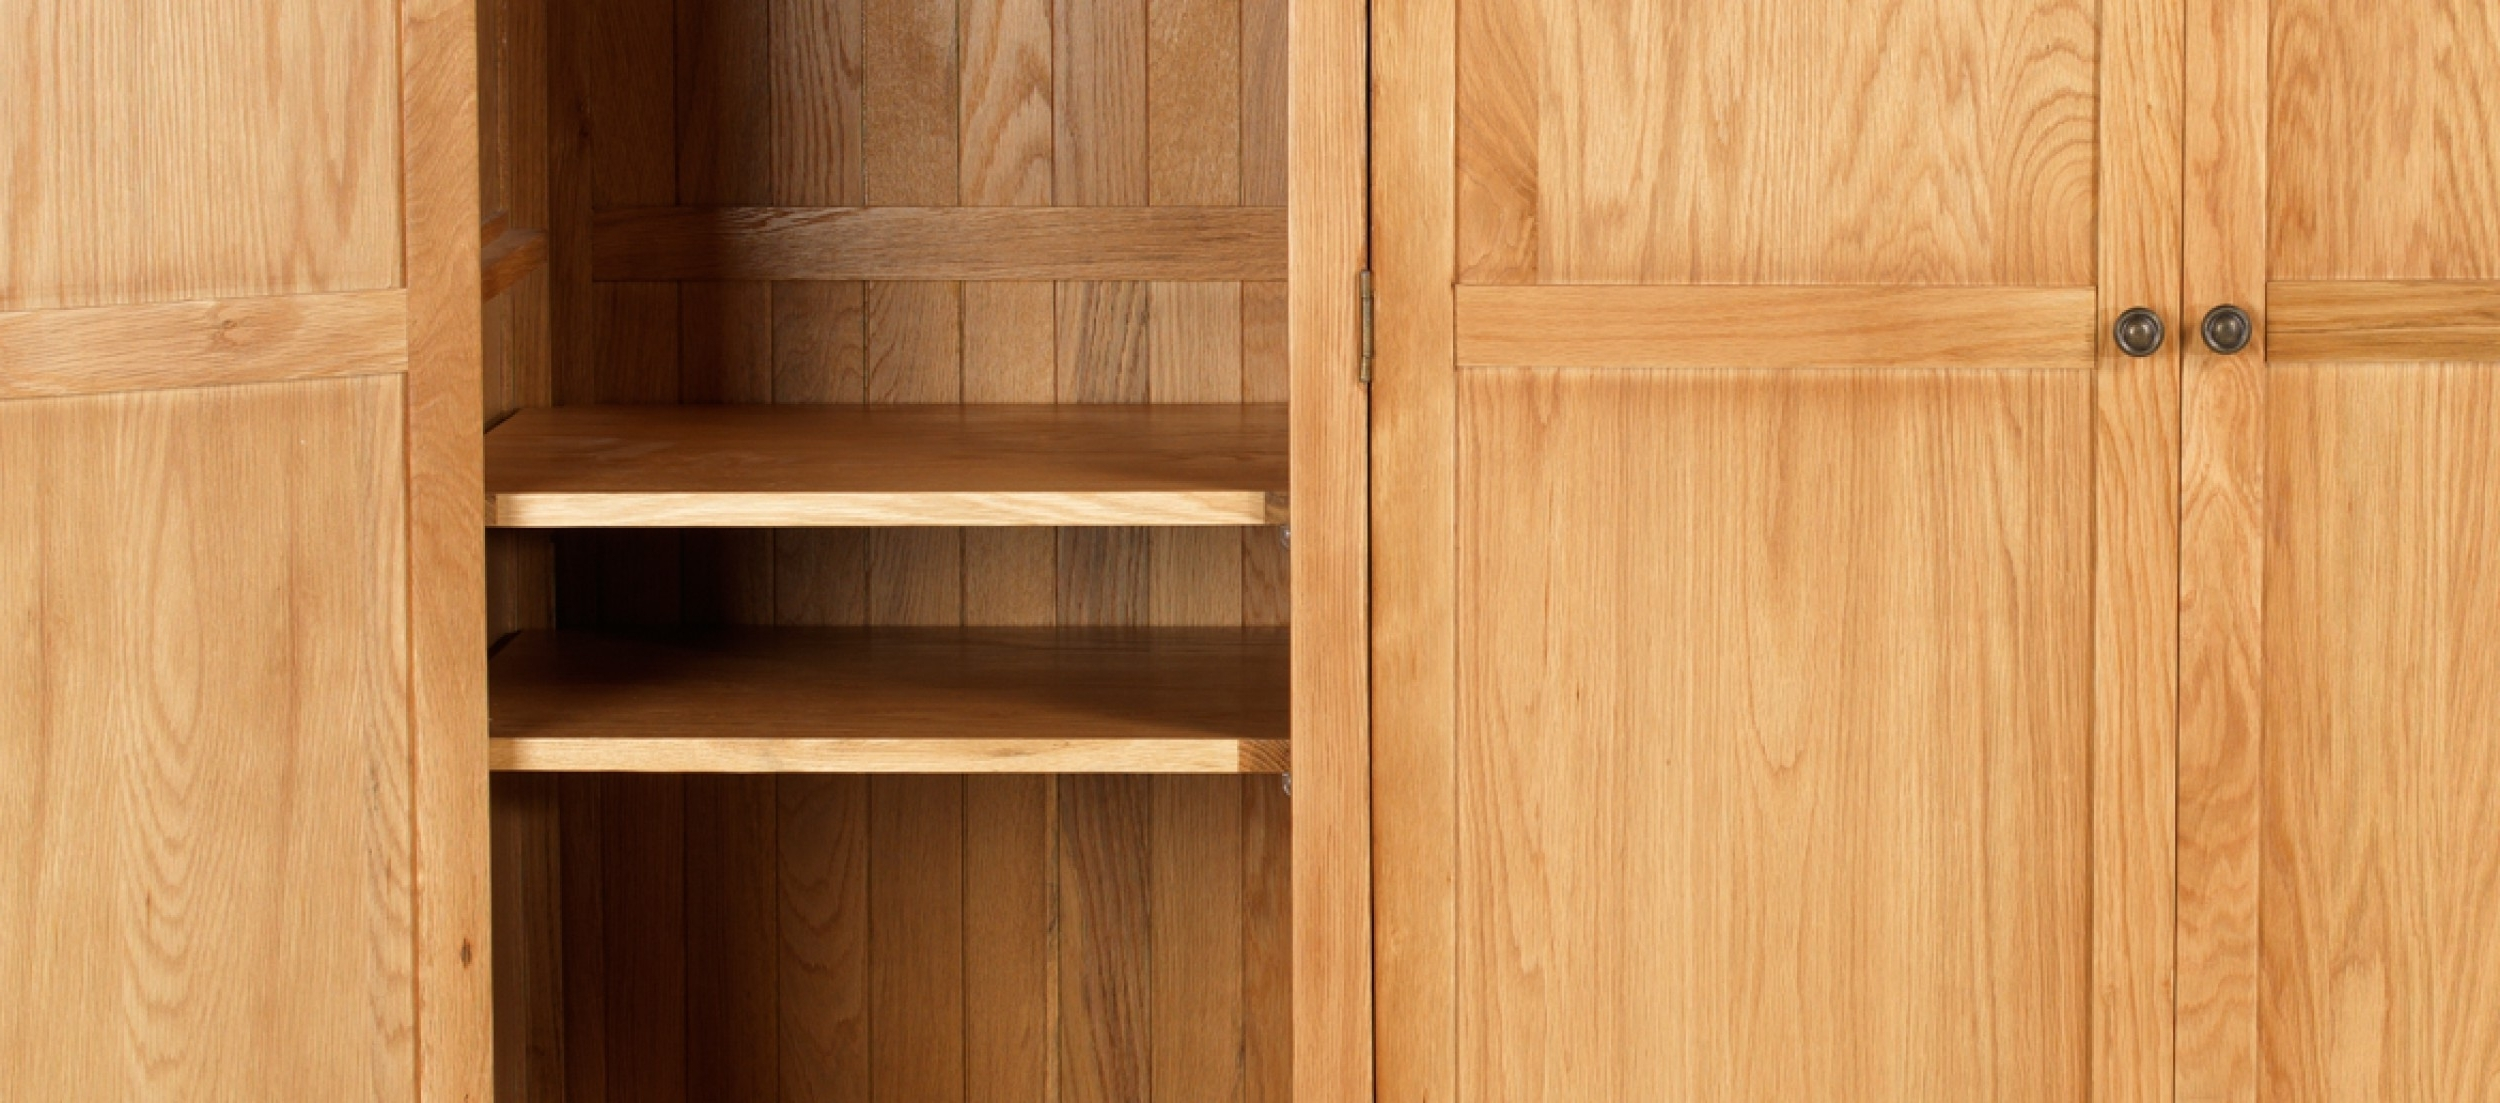 Quercus Living In Oak Wardrobes With Drawers And Shelves (View 12 of 15)